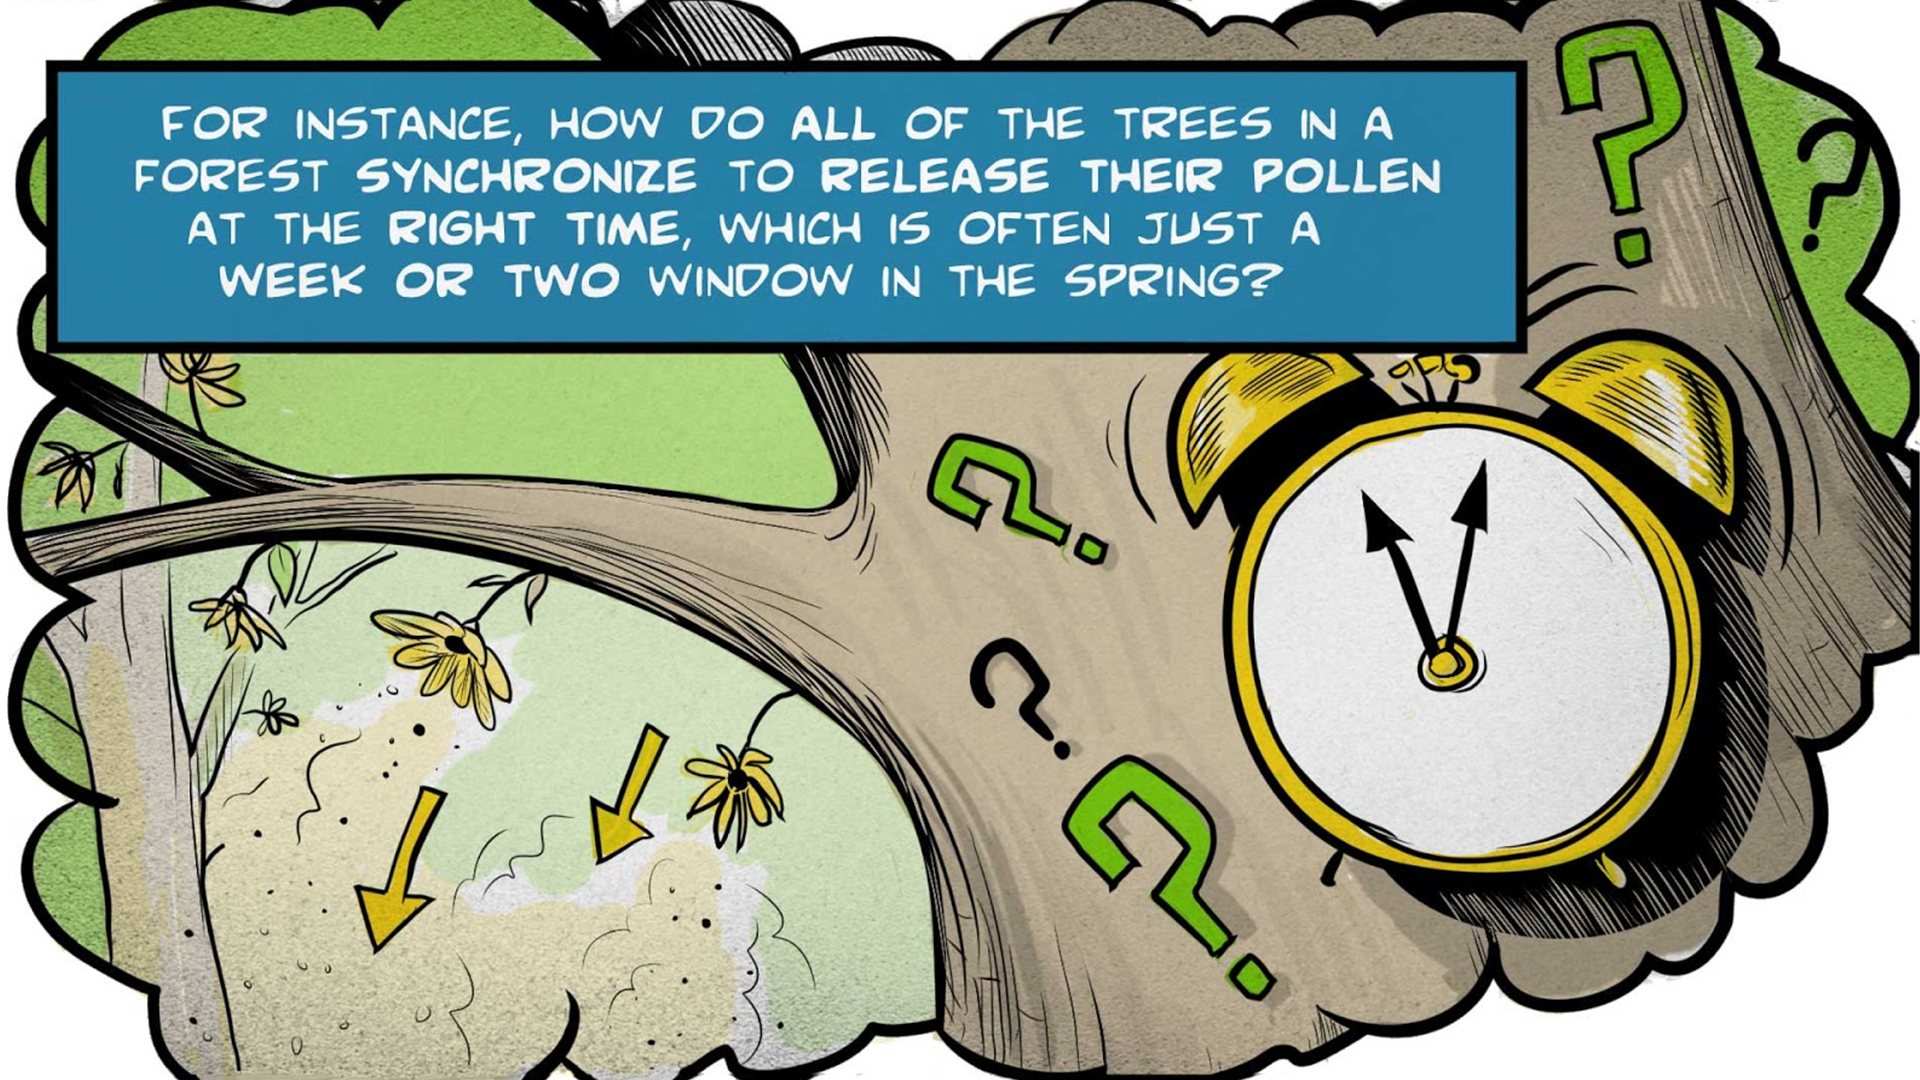 """Felix, the narrator, says, """"For instance, how do all of the trees in a forest synchronize to release their pollen at the right time, which is often just a week or two window in the spring?"""" An alarm clock and question marks are superimposed on a tree. Flowers on a branch release pollen into the air."""